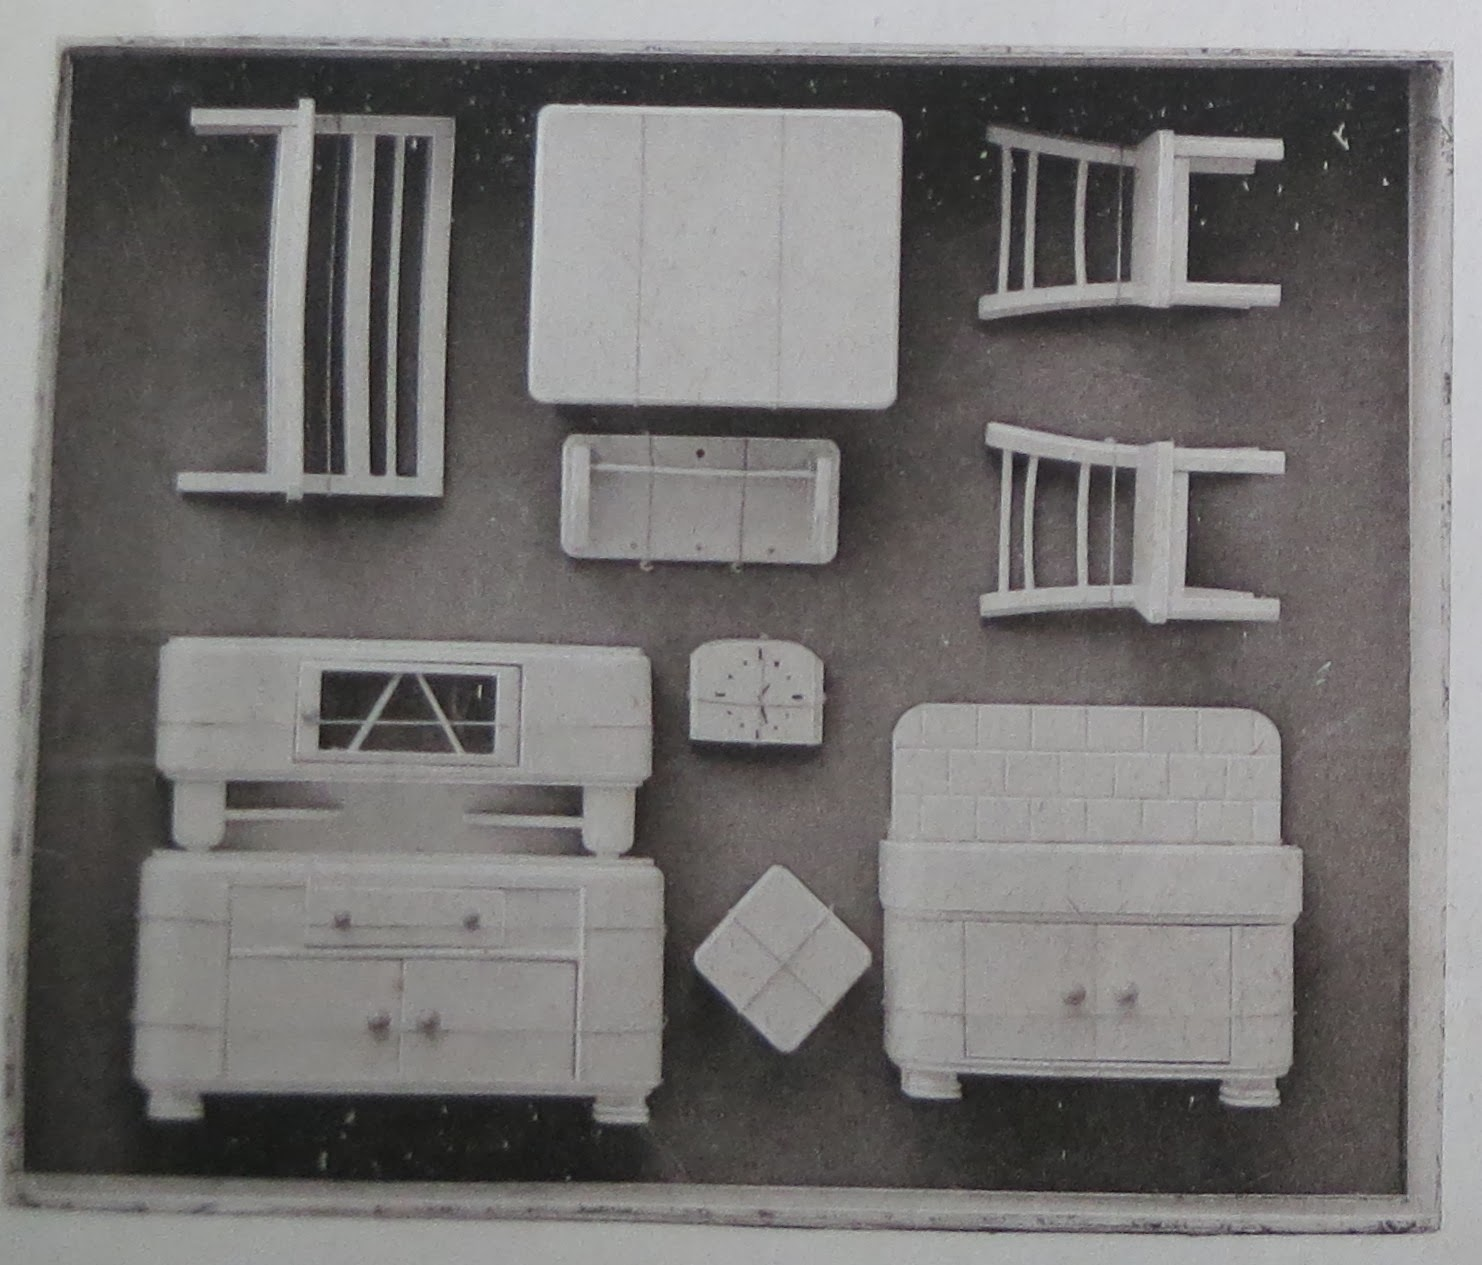 1950 greyscale catalogue pic of another Rülke kitchen